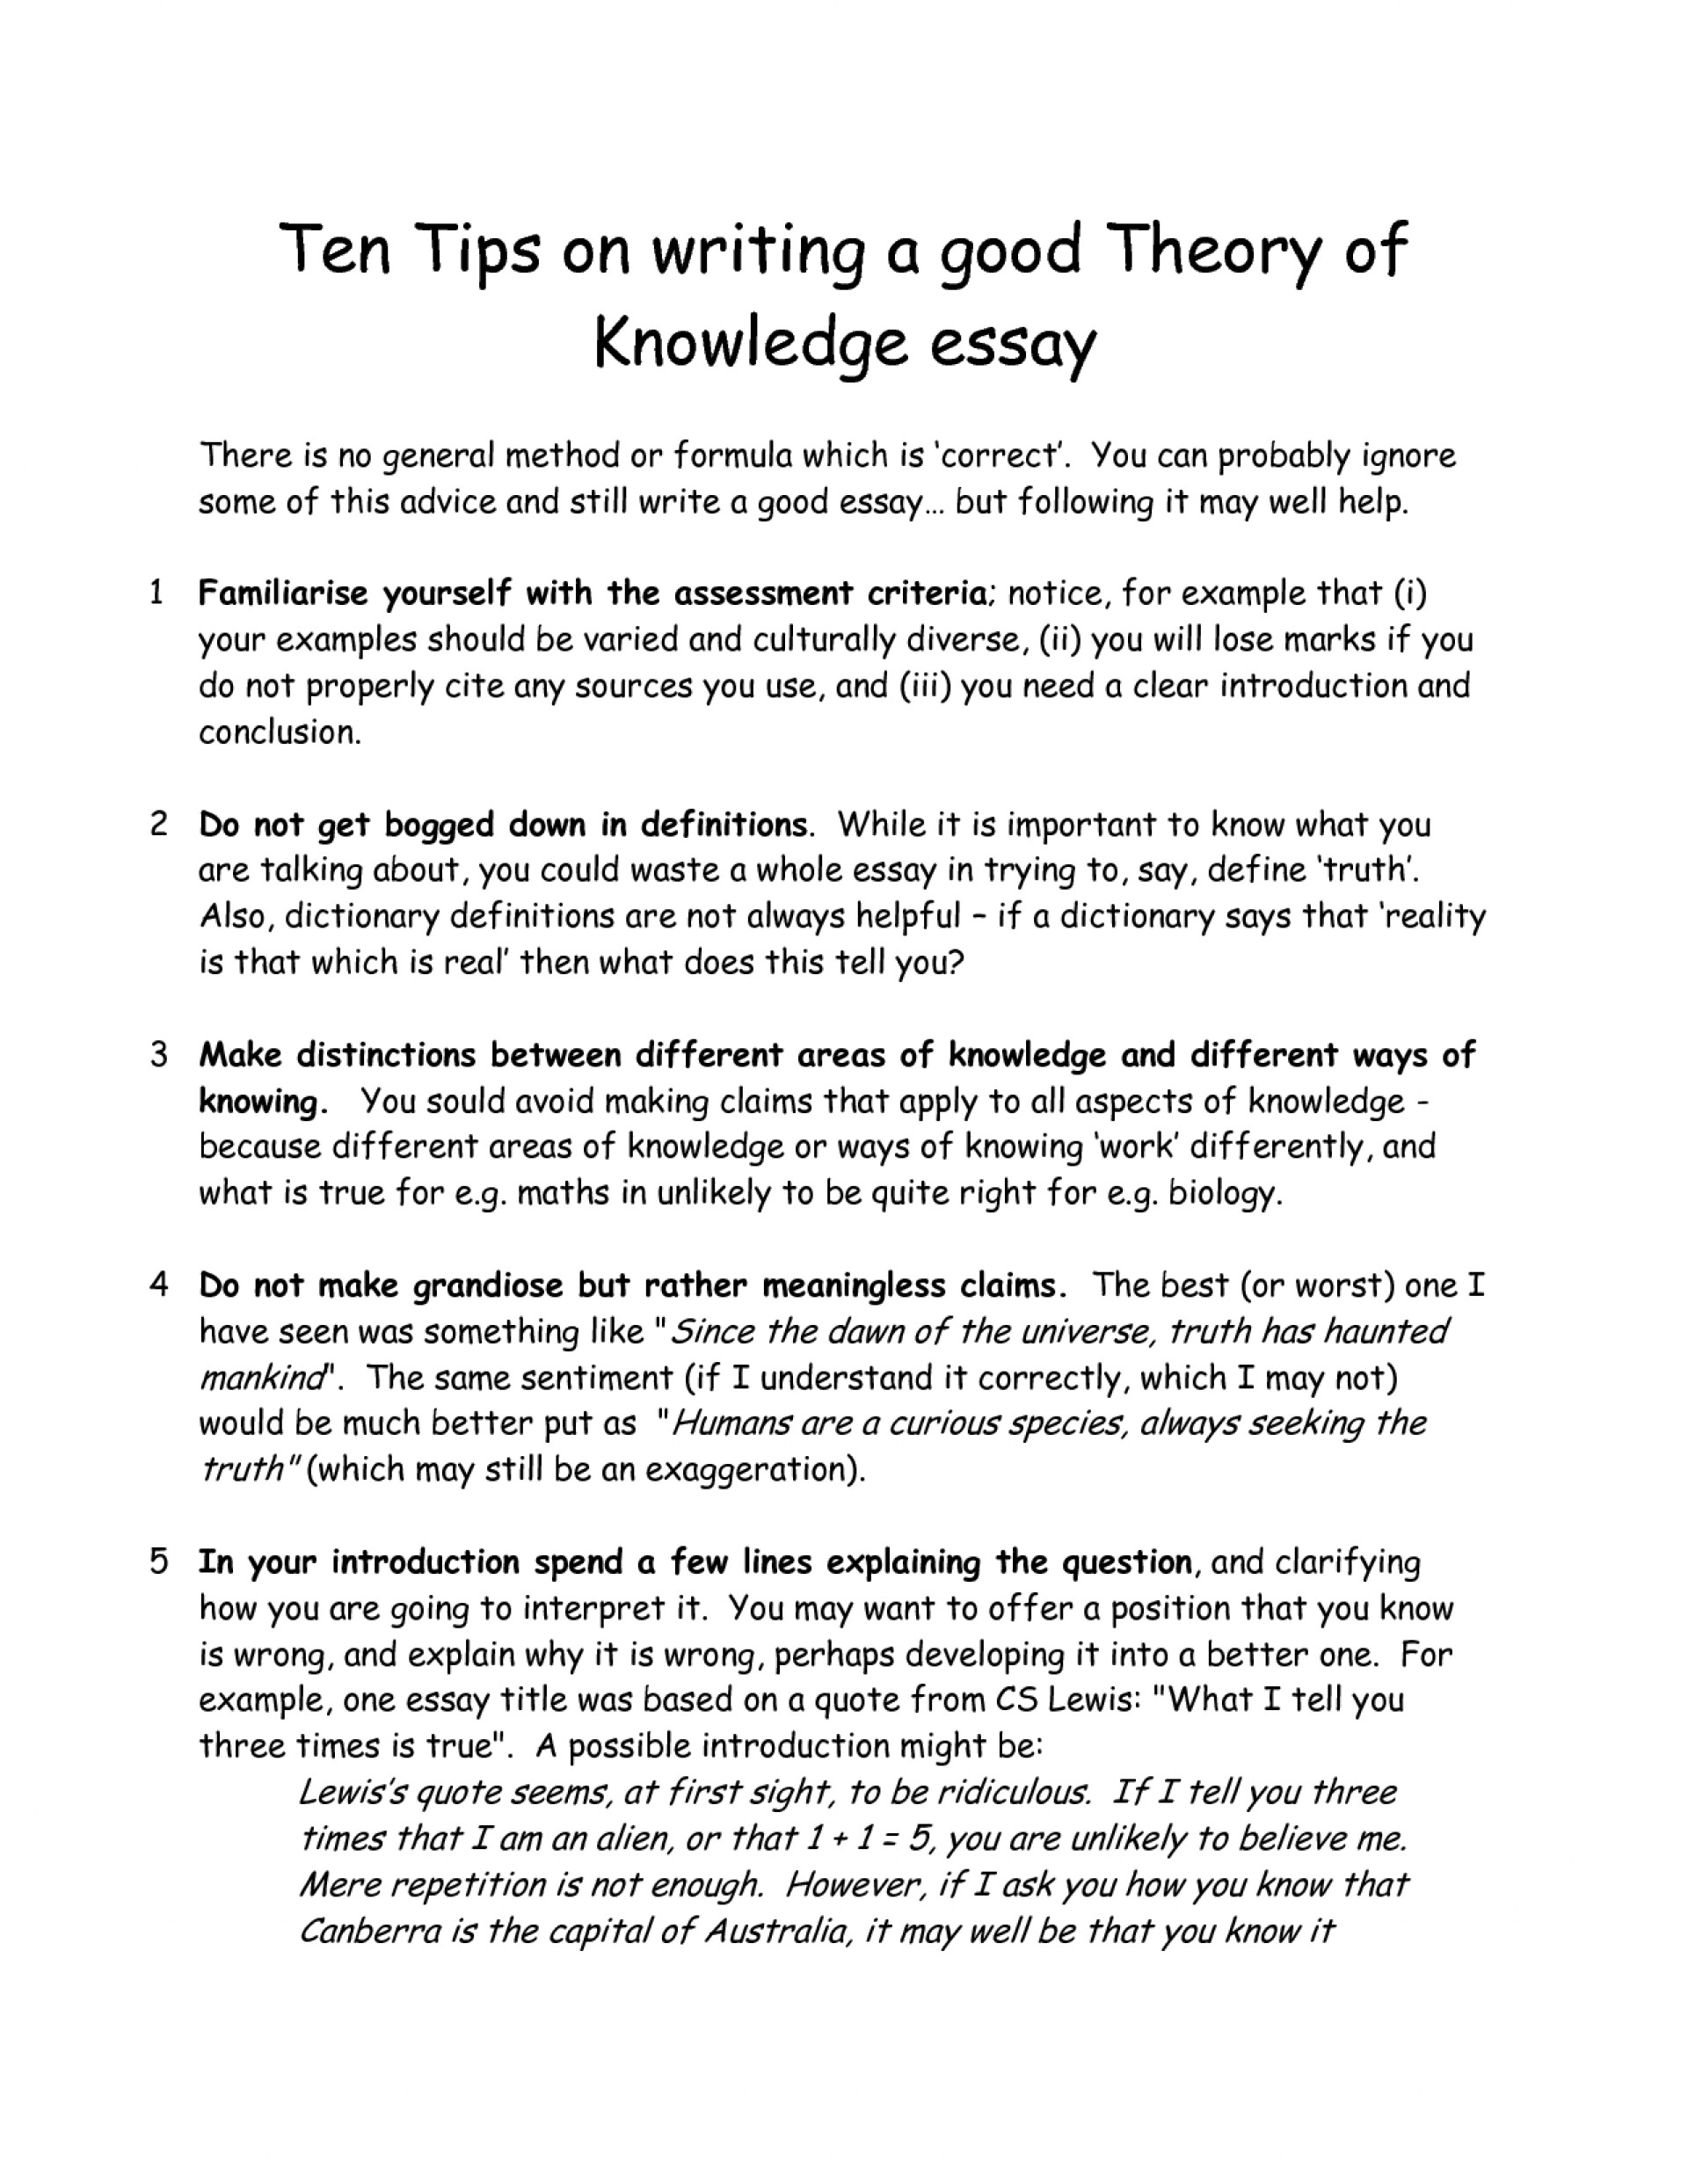 013 Essay Example Write Awful A About Your Best Friend Descriptive On Freedom Fighter 1920